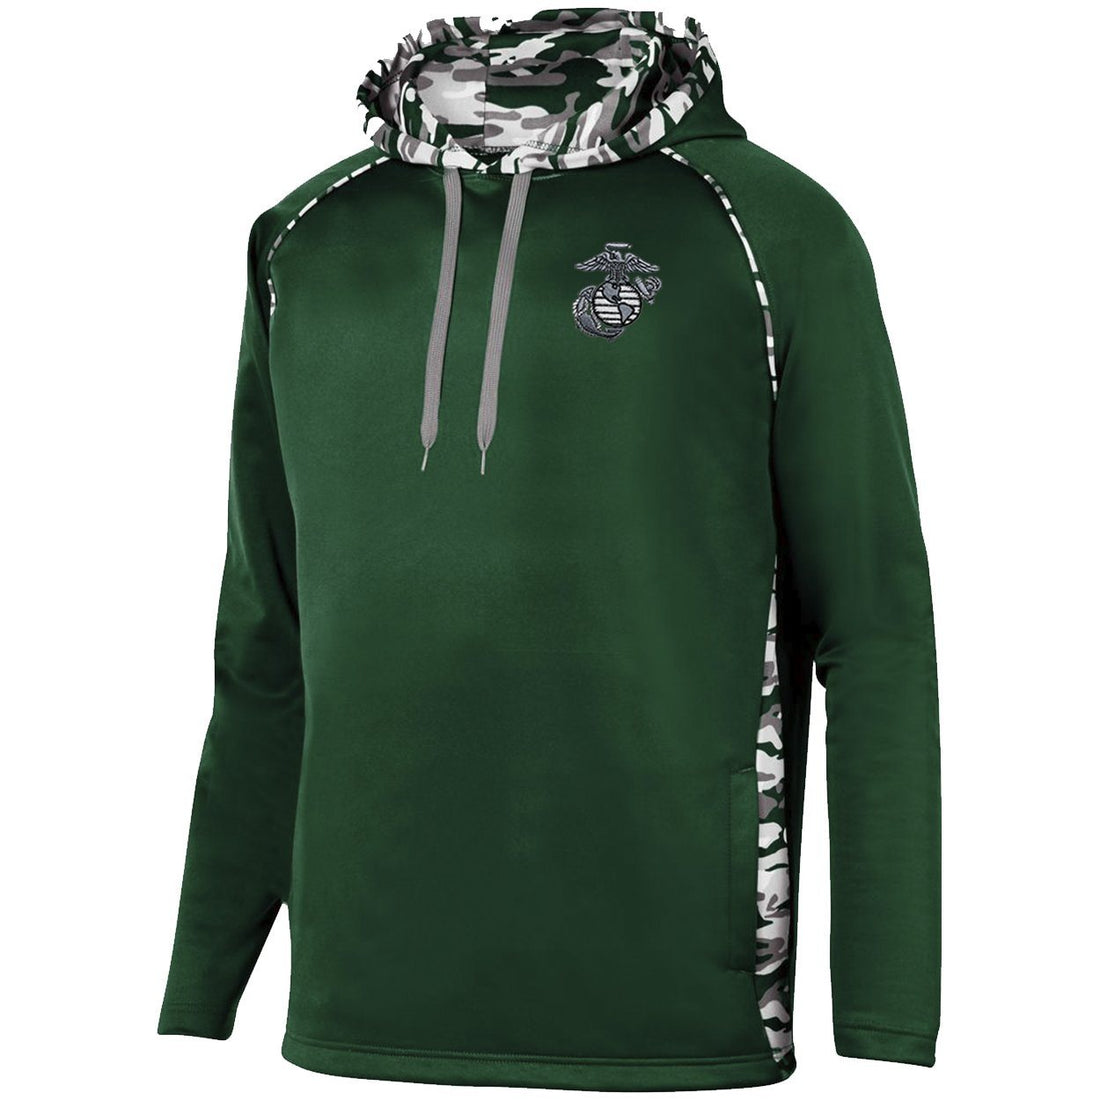 COMBAT CHARGED Aluminum EGA Embroidered Augusta PERFORMANCE Mod Camo Hoodie